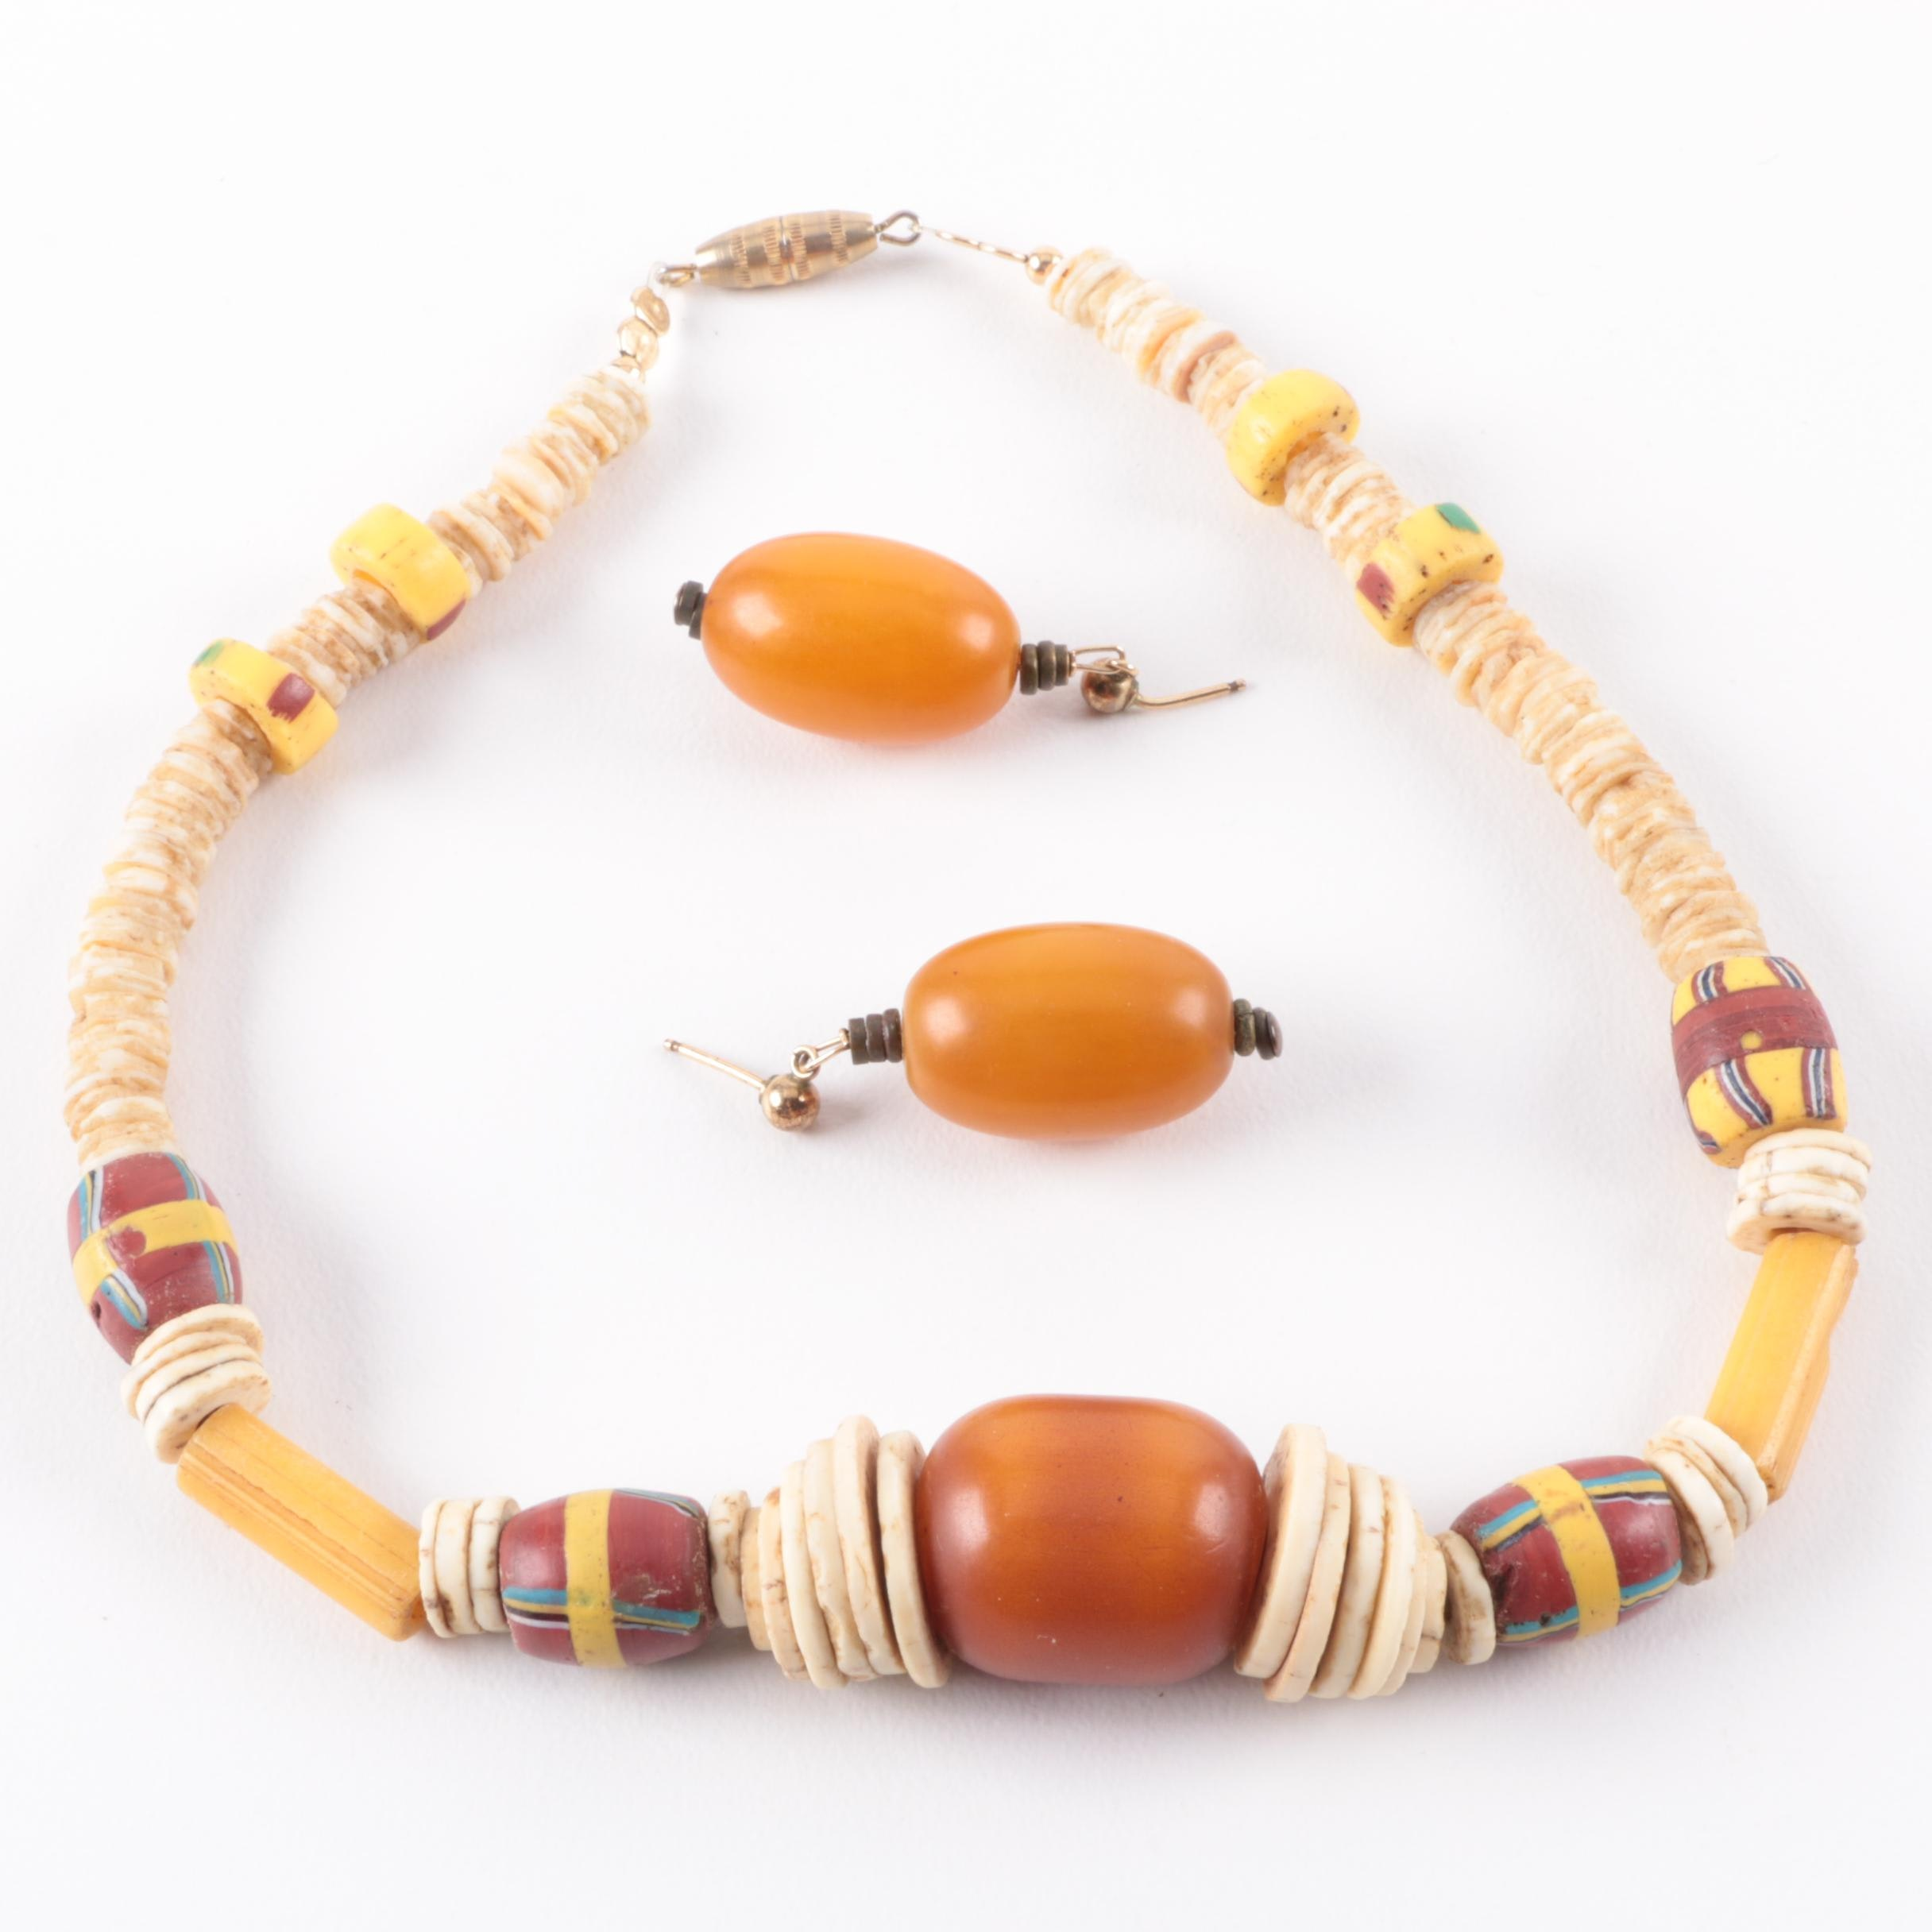 African Trade Bead Necklace and Earrings with Bakelite and Bone